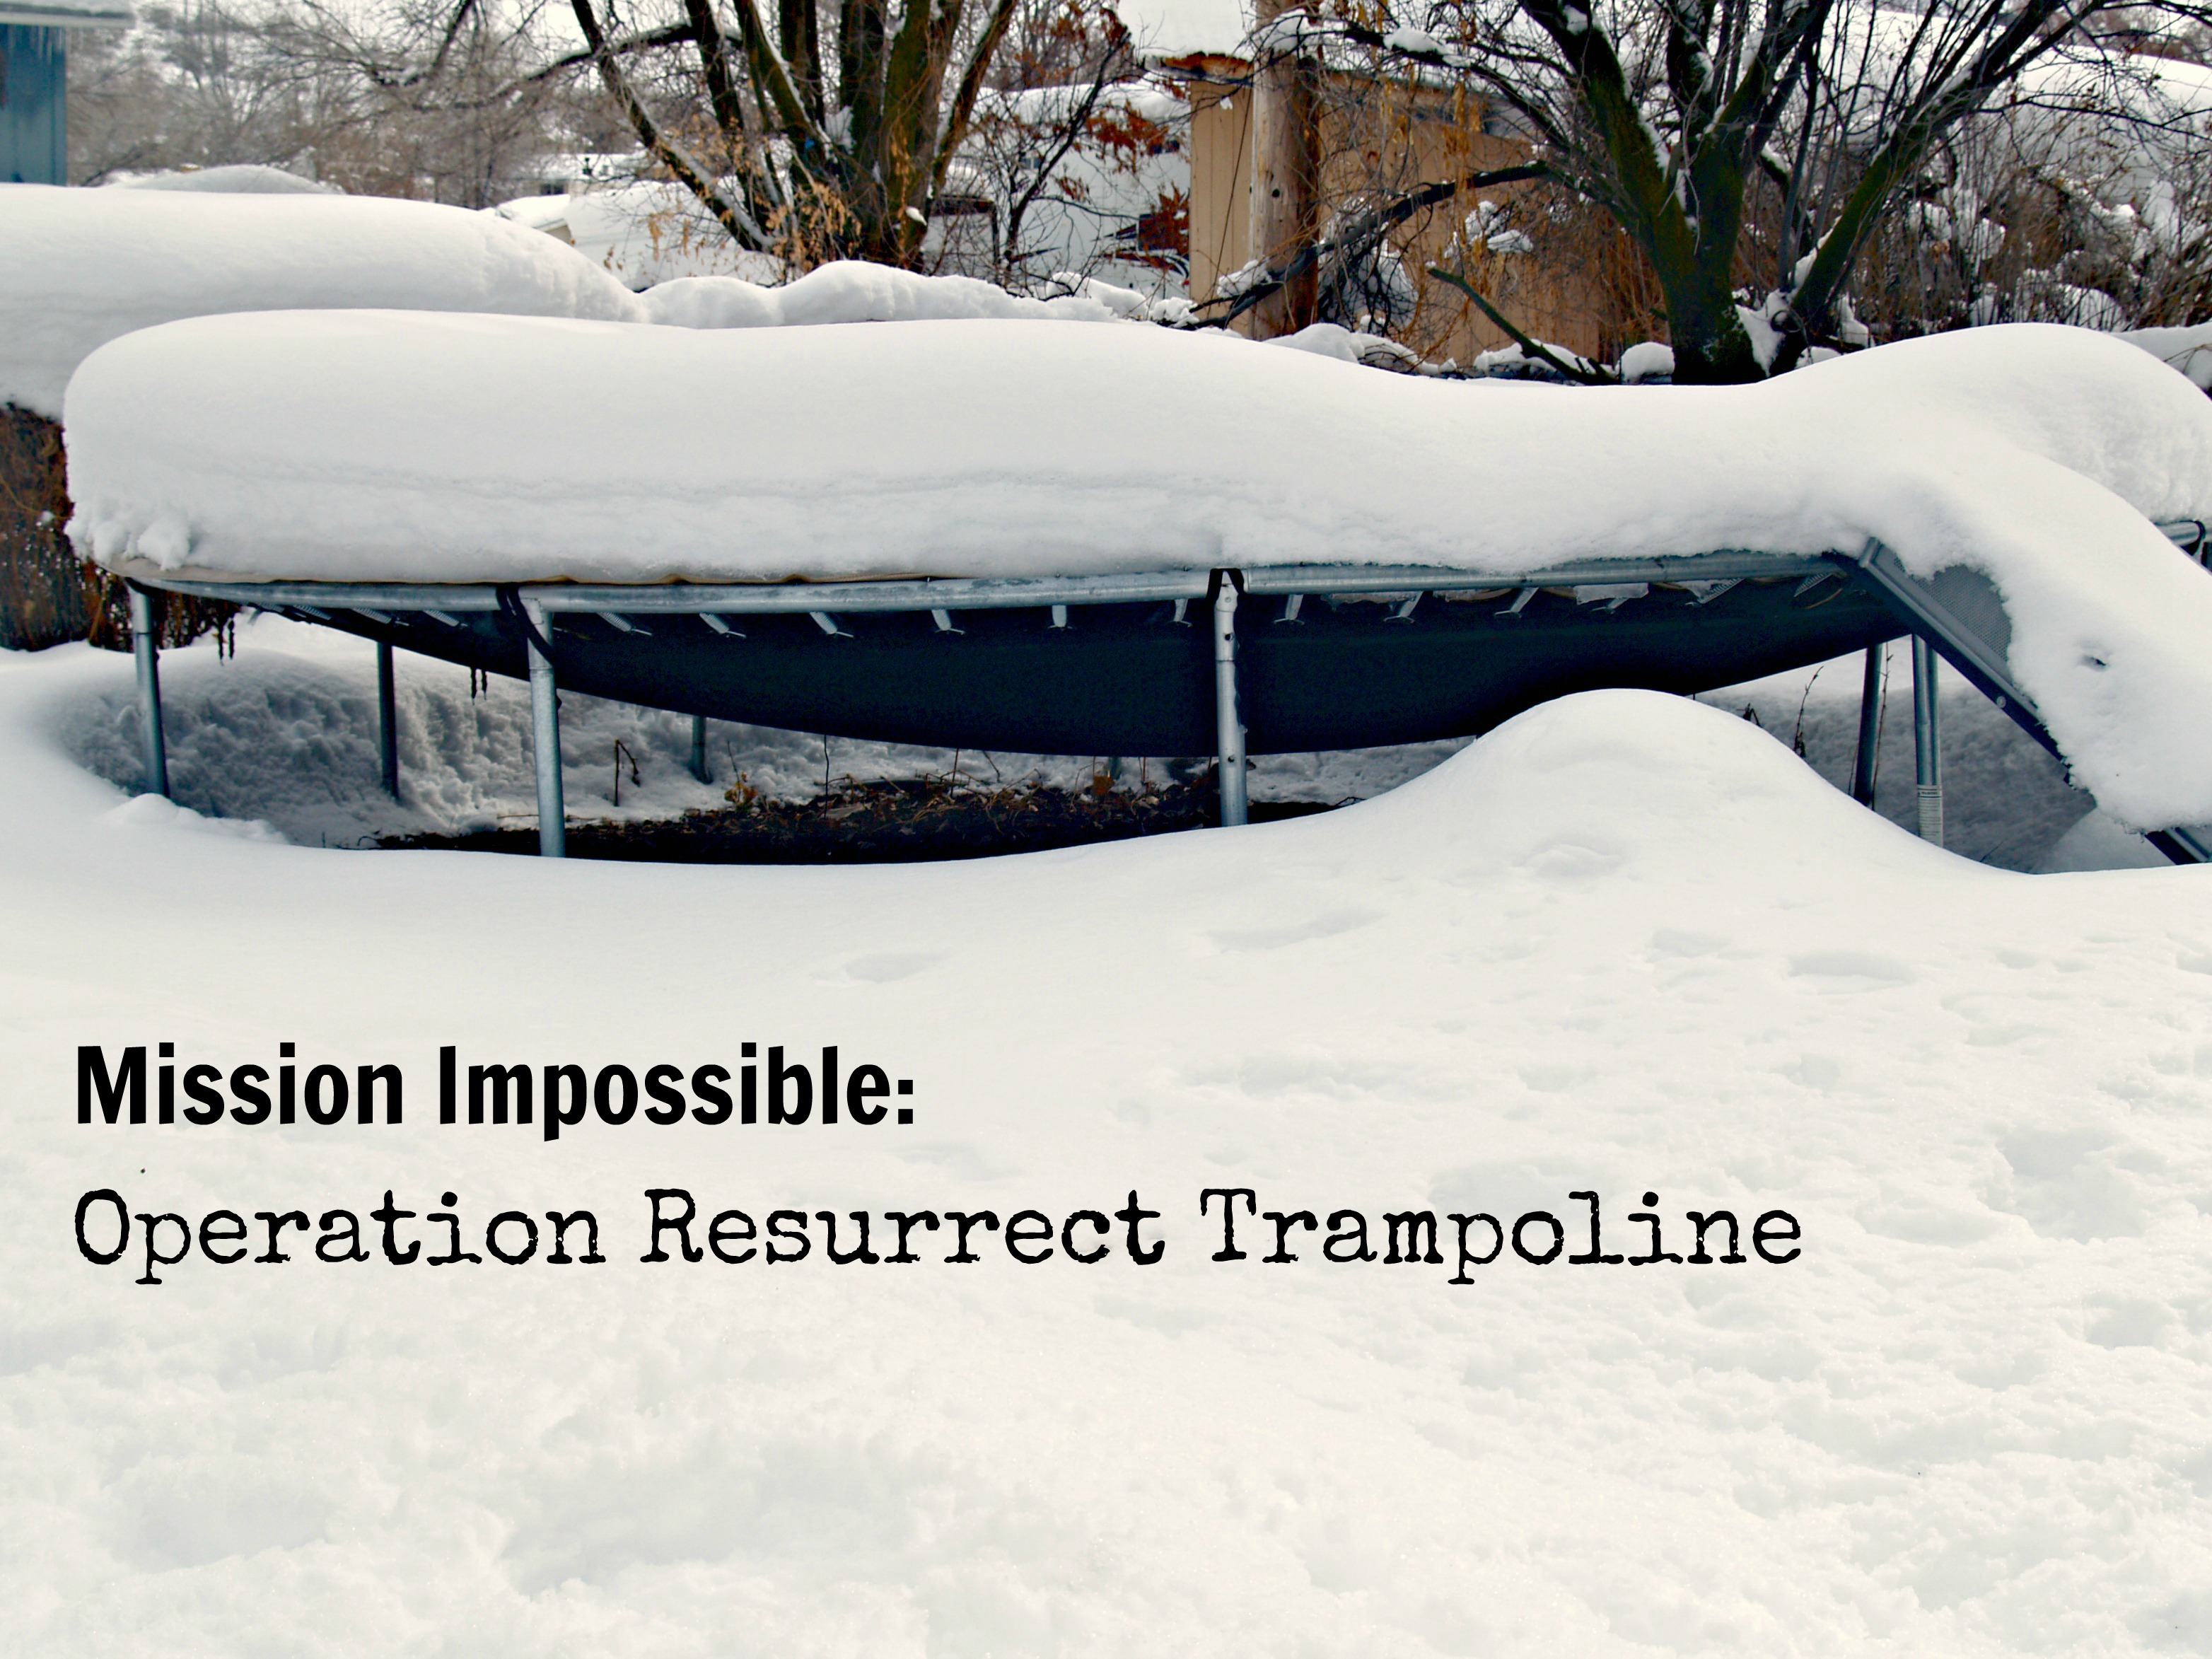 Mission Impossible: Operation Resurrect Trampoline